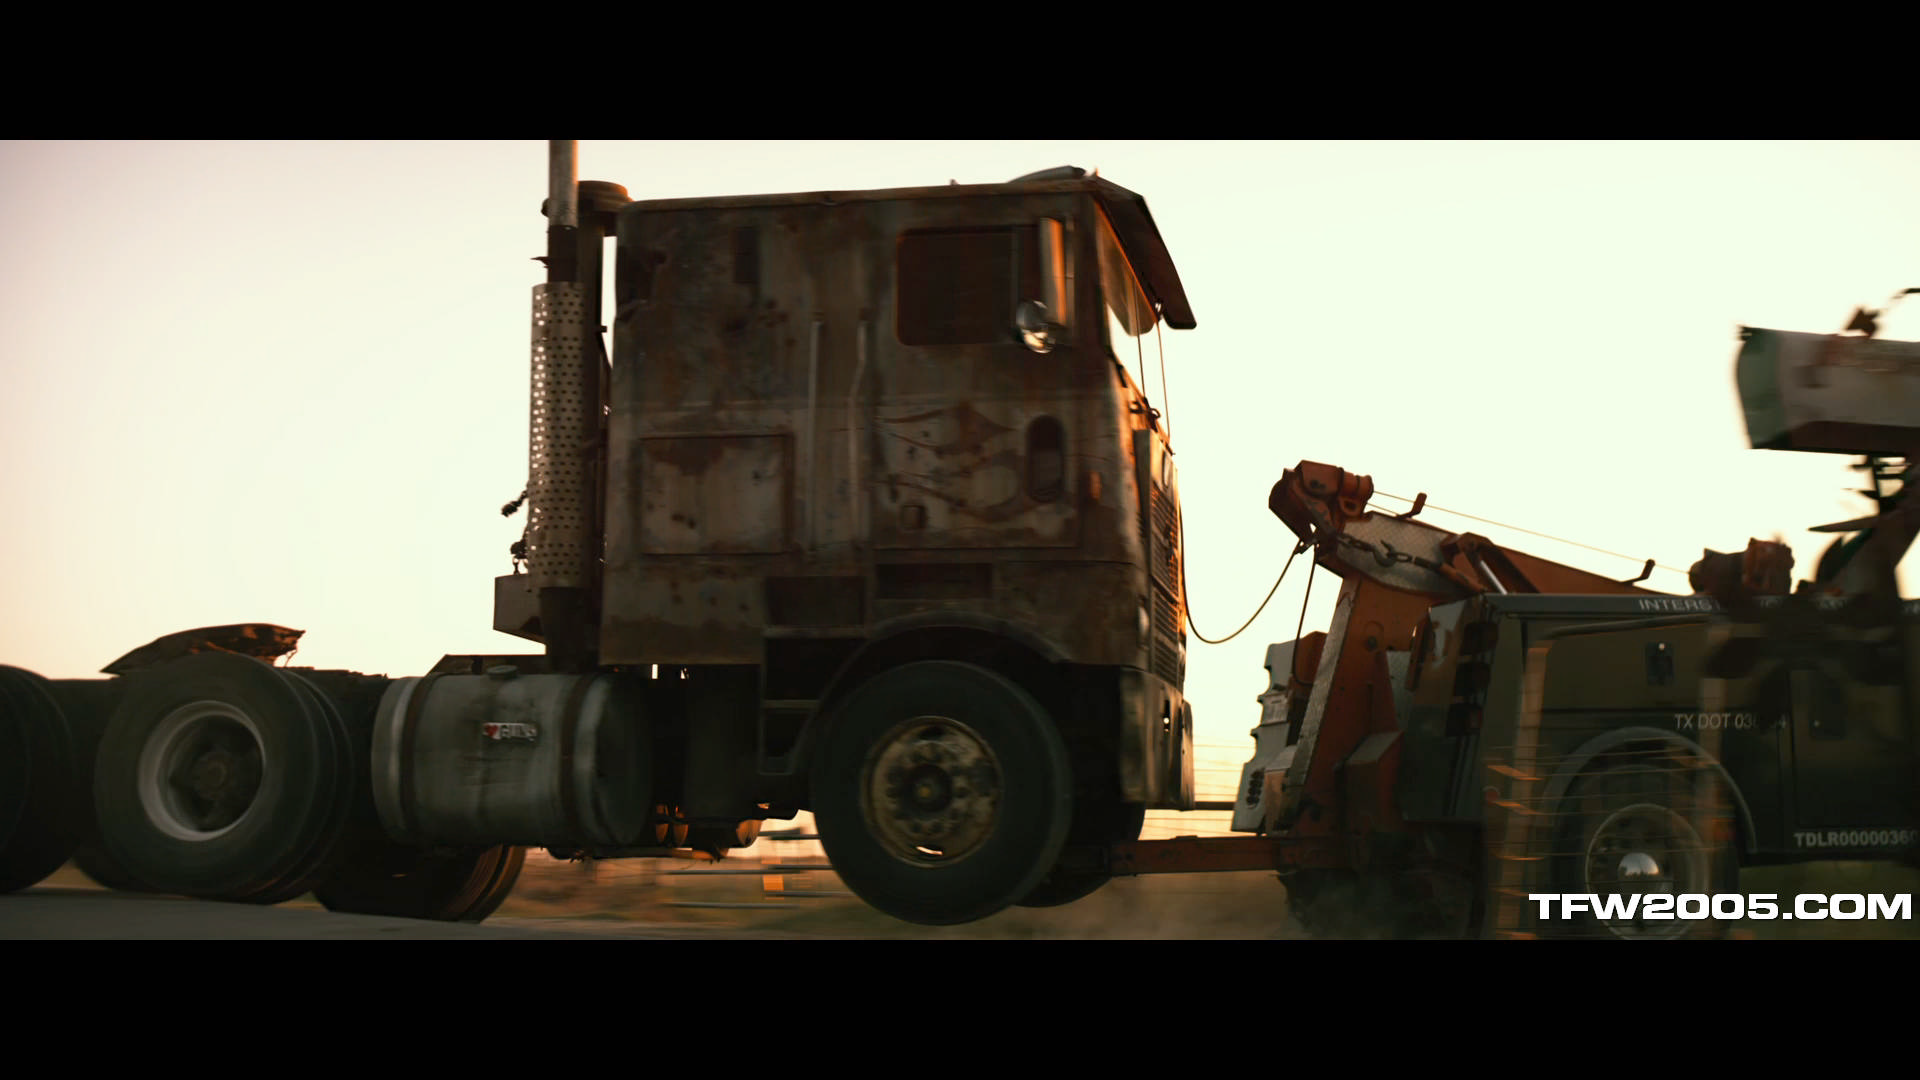 transformers aoe trailer still images hd transformers